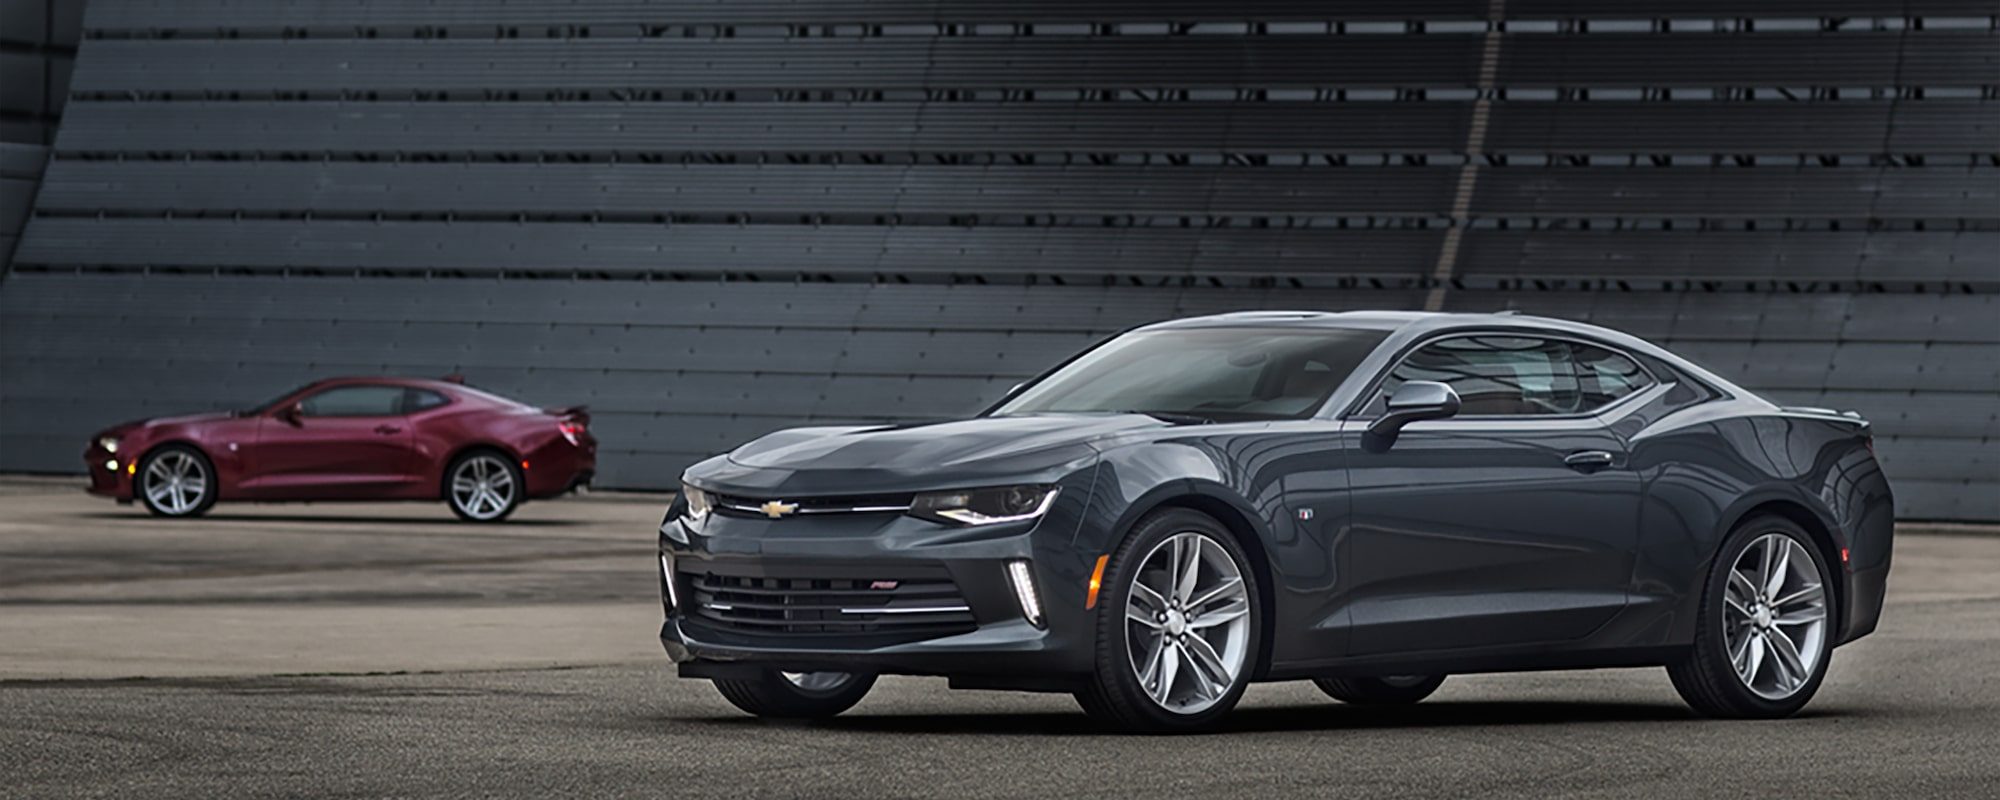 Perfect Chevrolet Performance Cars Design